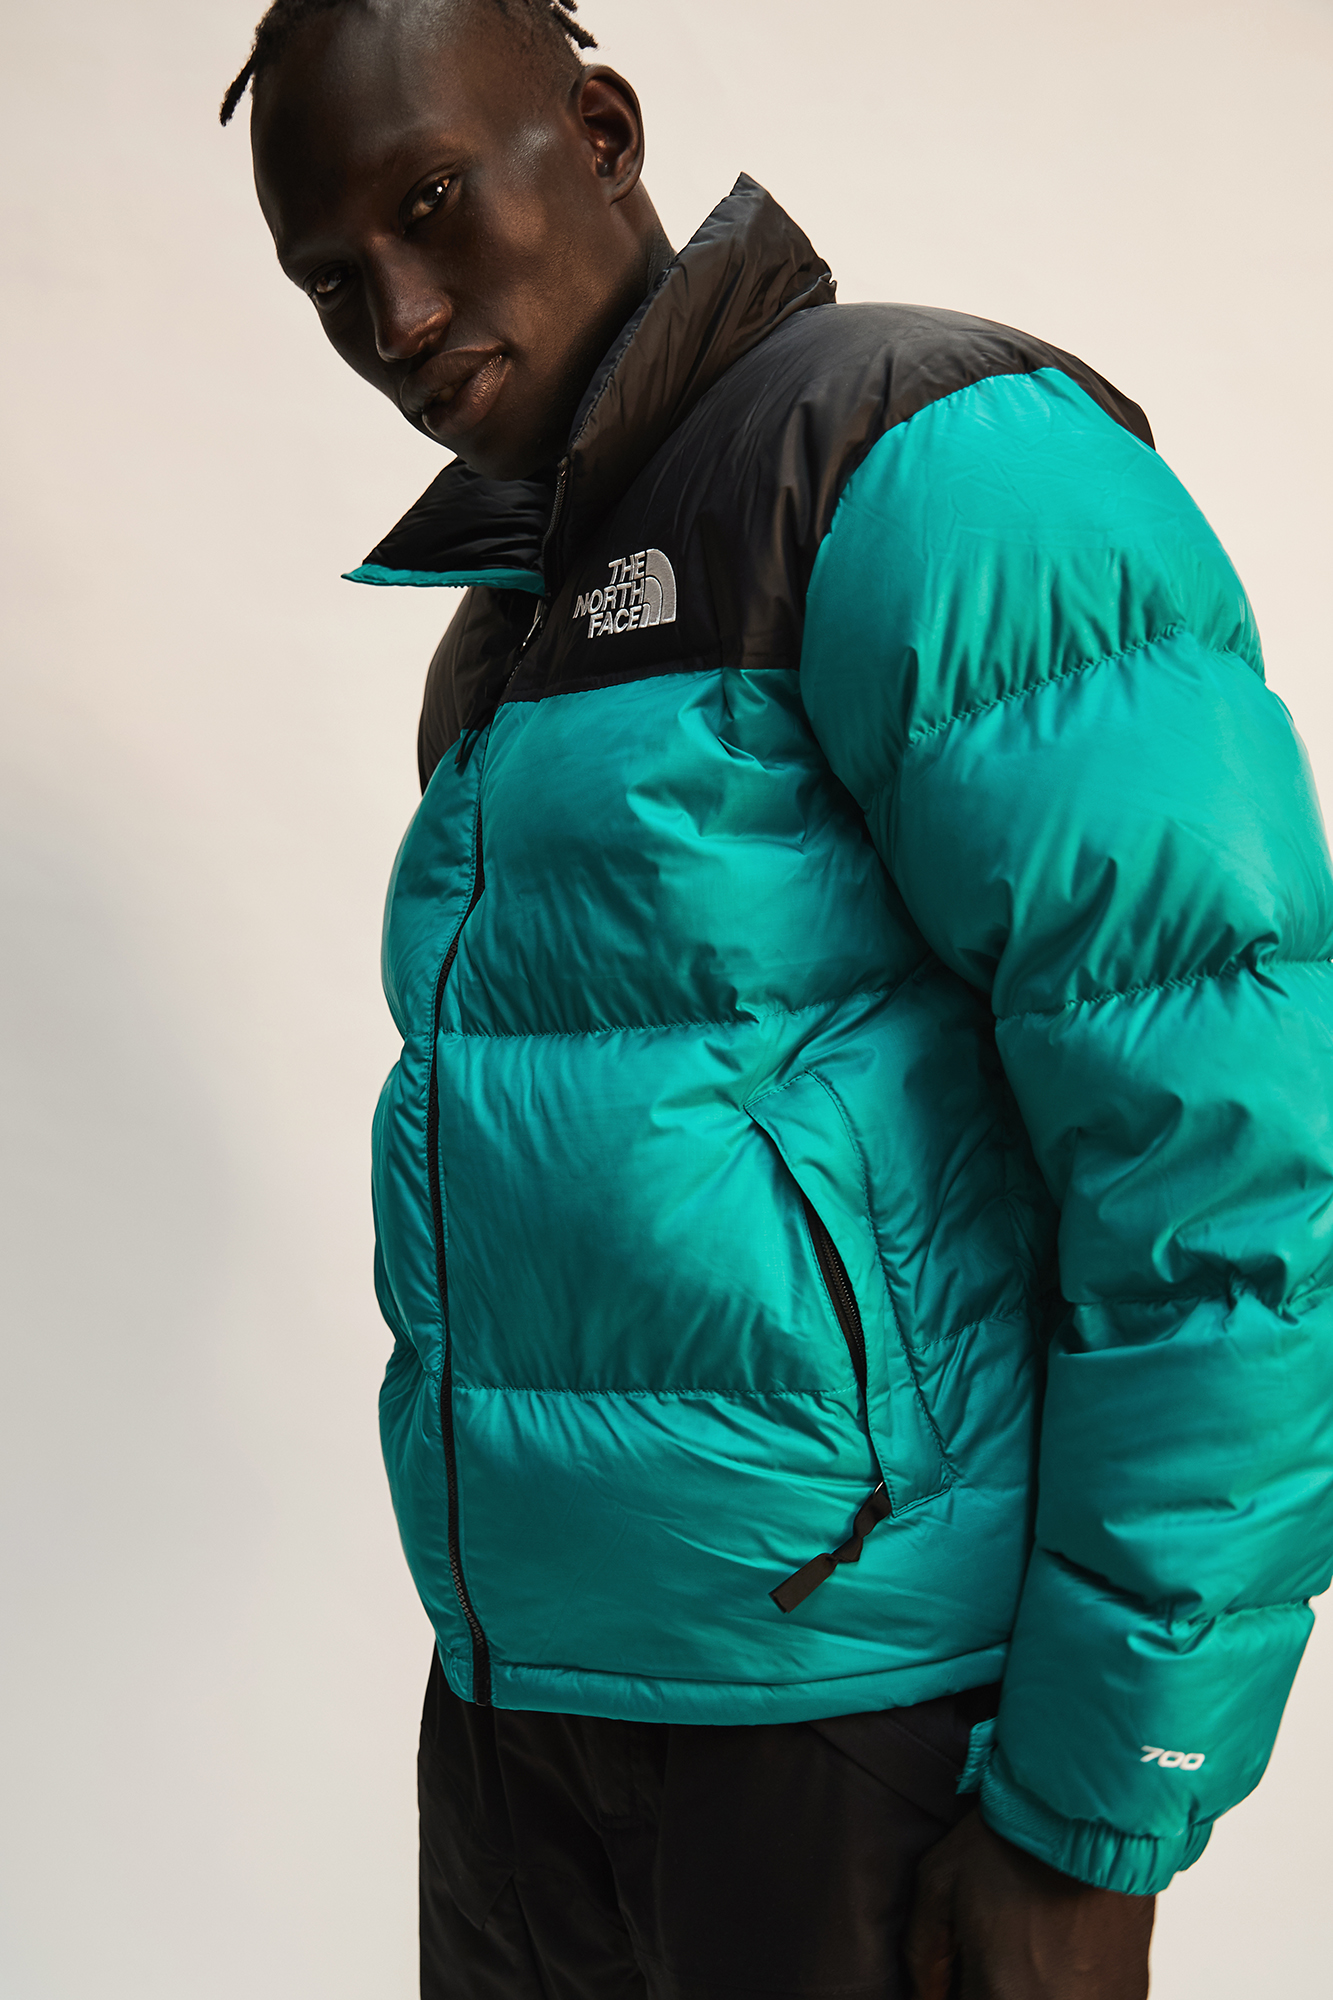 Gabriel Khamis wears The North Face for The Iconic sport campaign